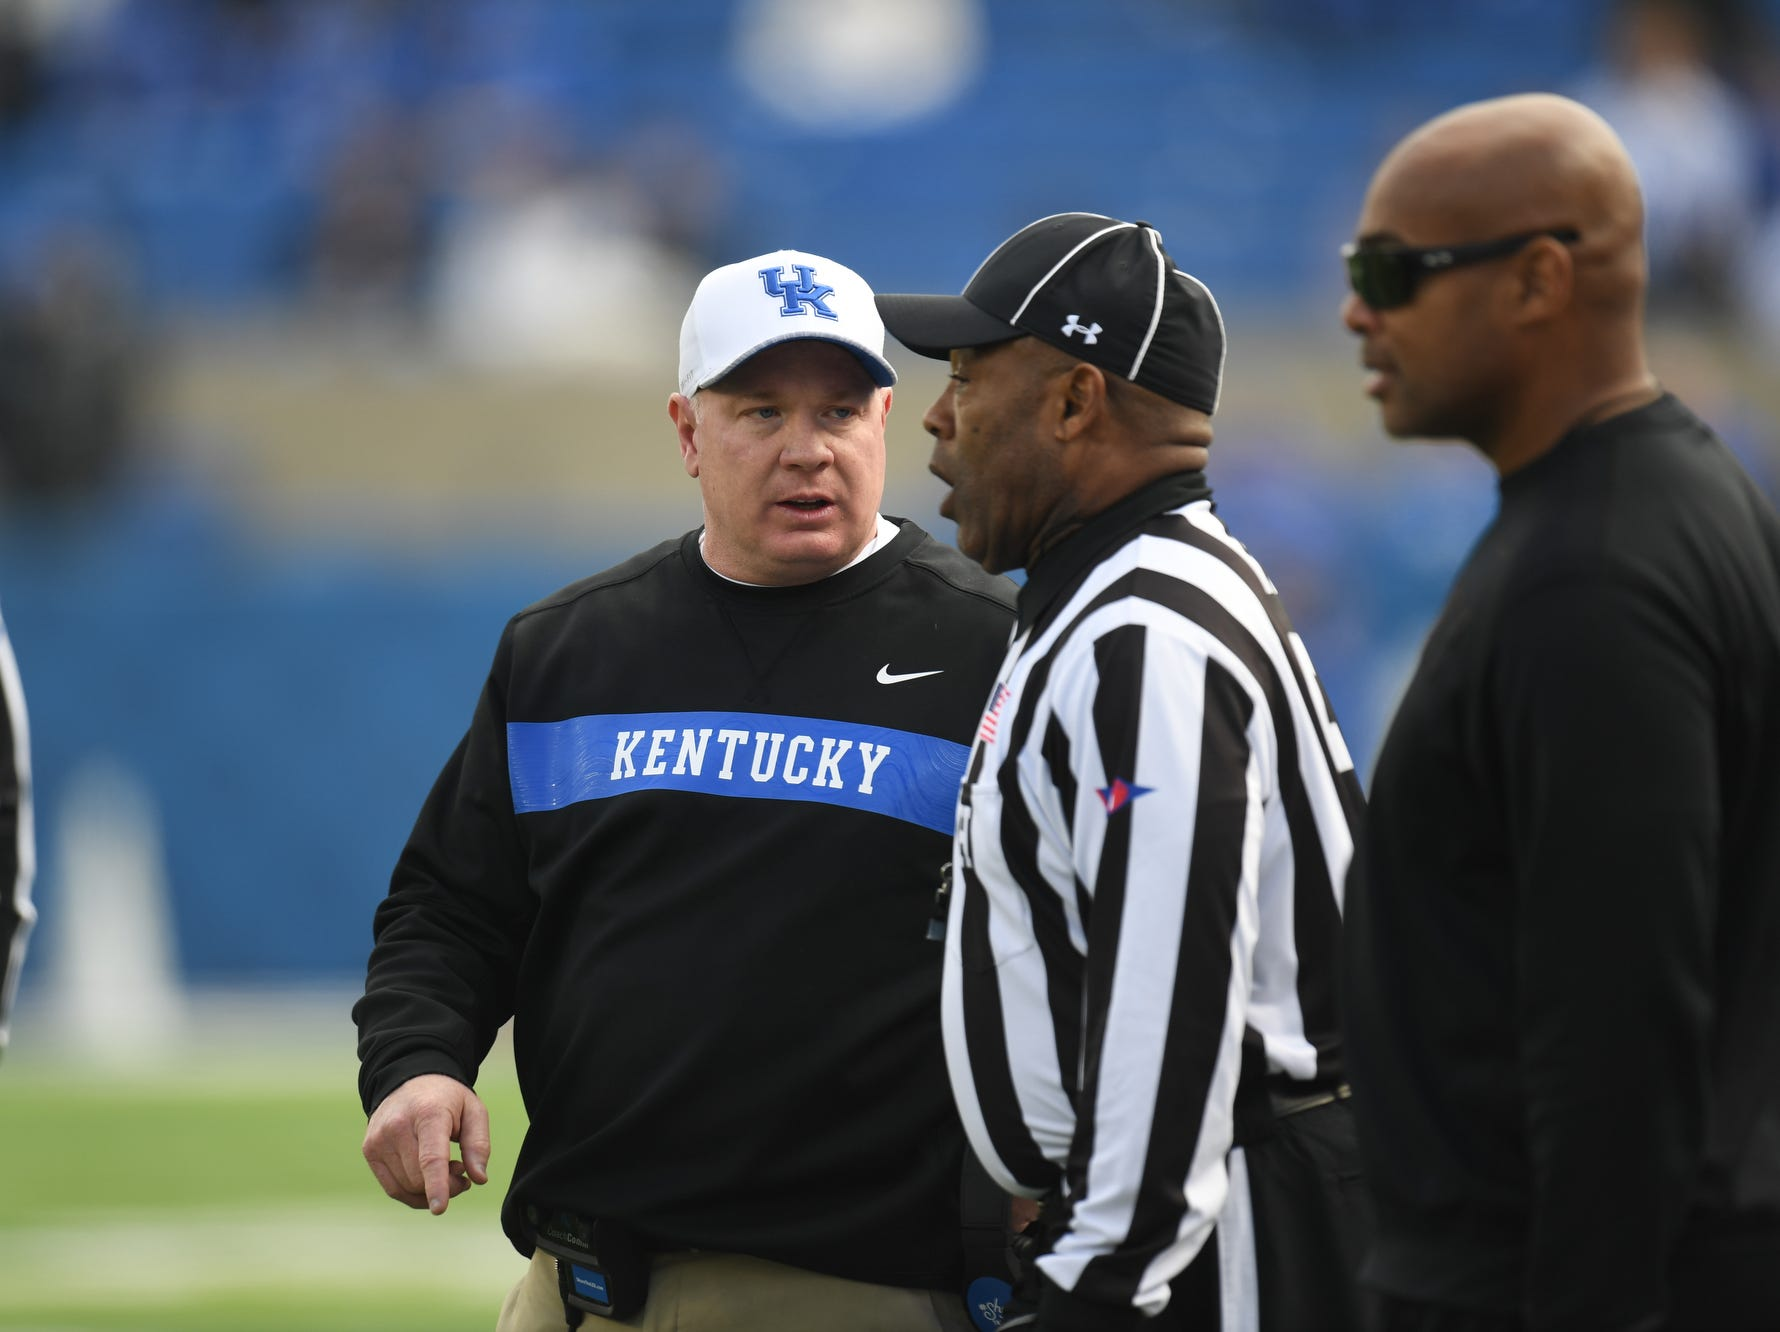 UK head coach Mark Stoops during the University of Kentucky football game against Middle Tennessee at Kroger Field in Lexington, Kentucky on Saturday, November 17, 2018.